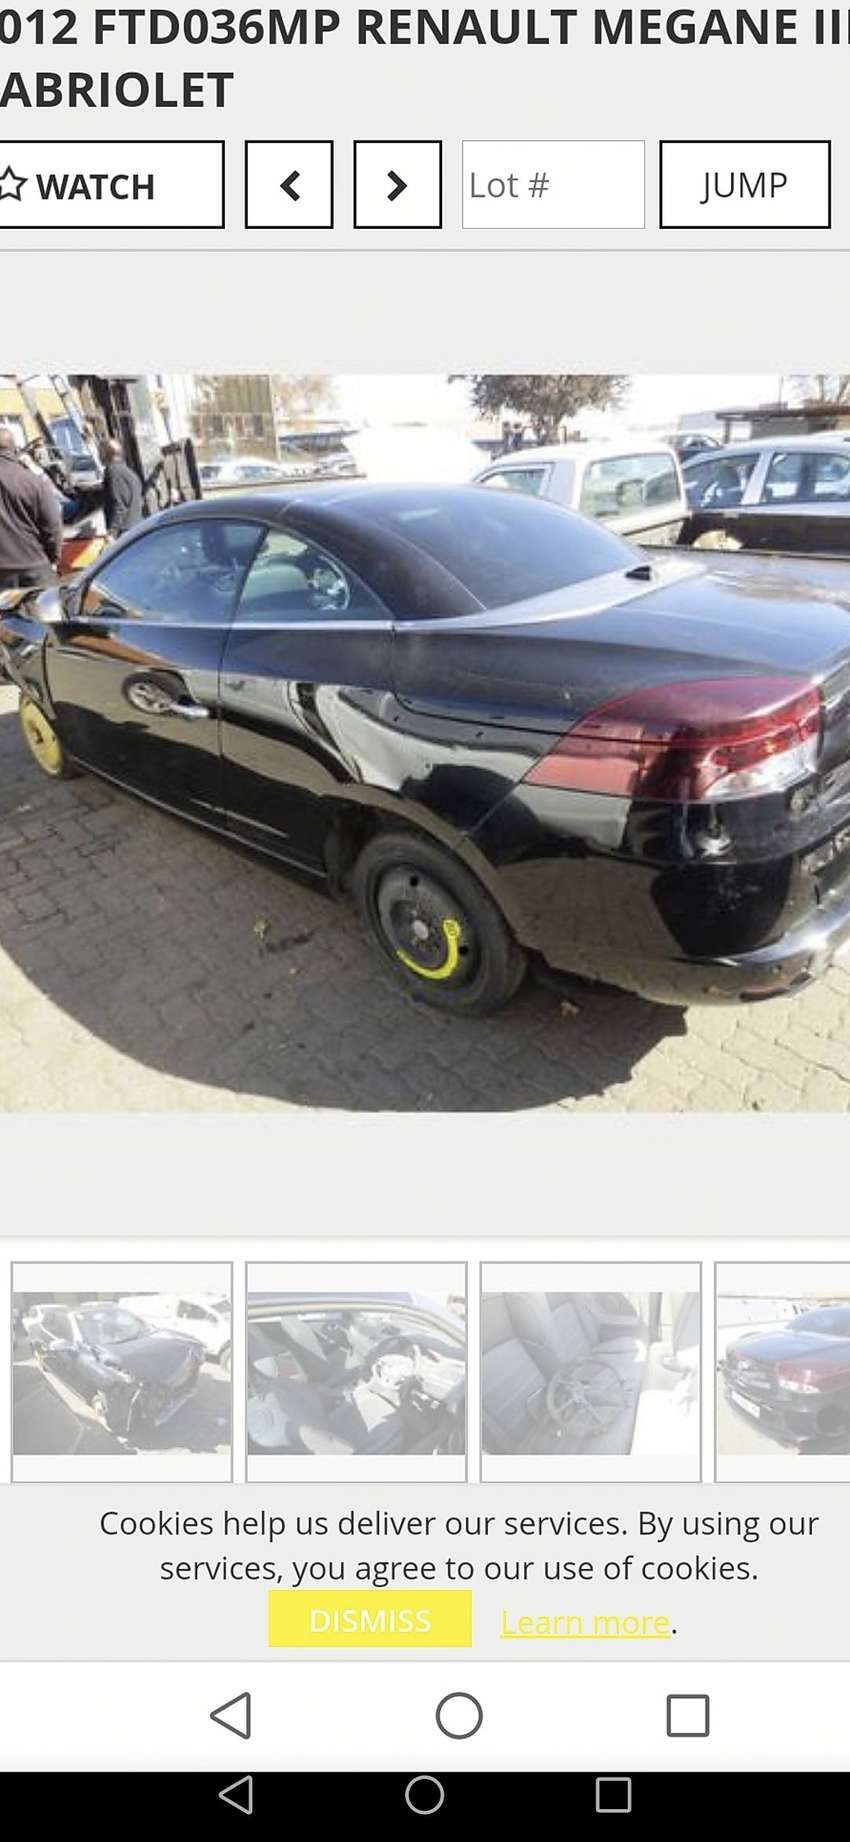 We are breaking up a 2012 Renault Megane III 1.4 GT Line Cabriolet 0